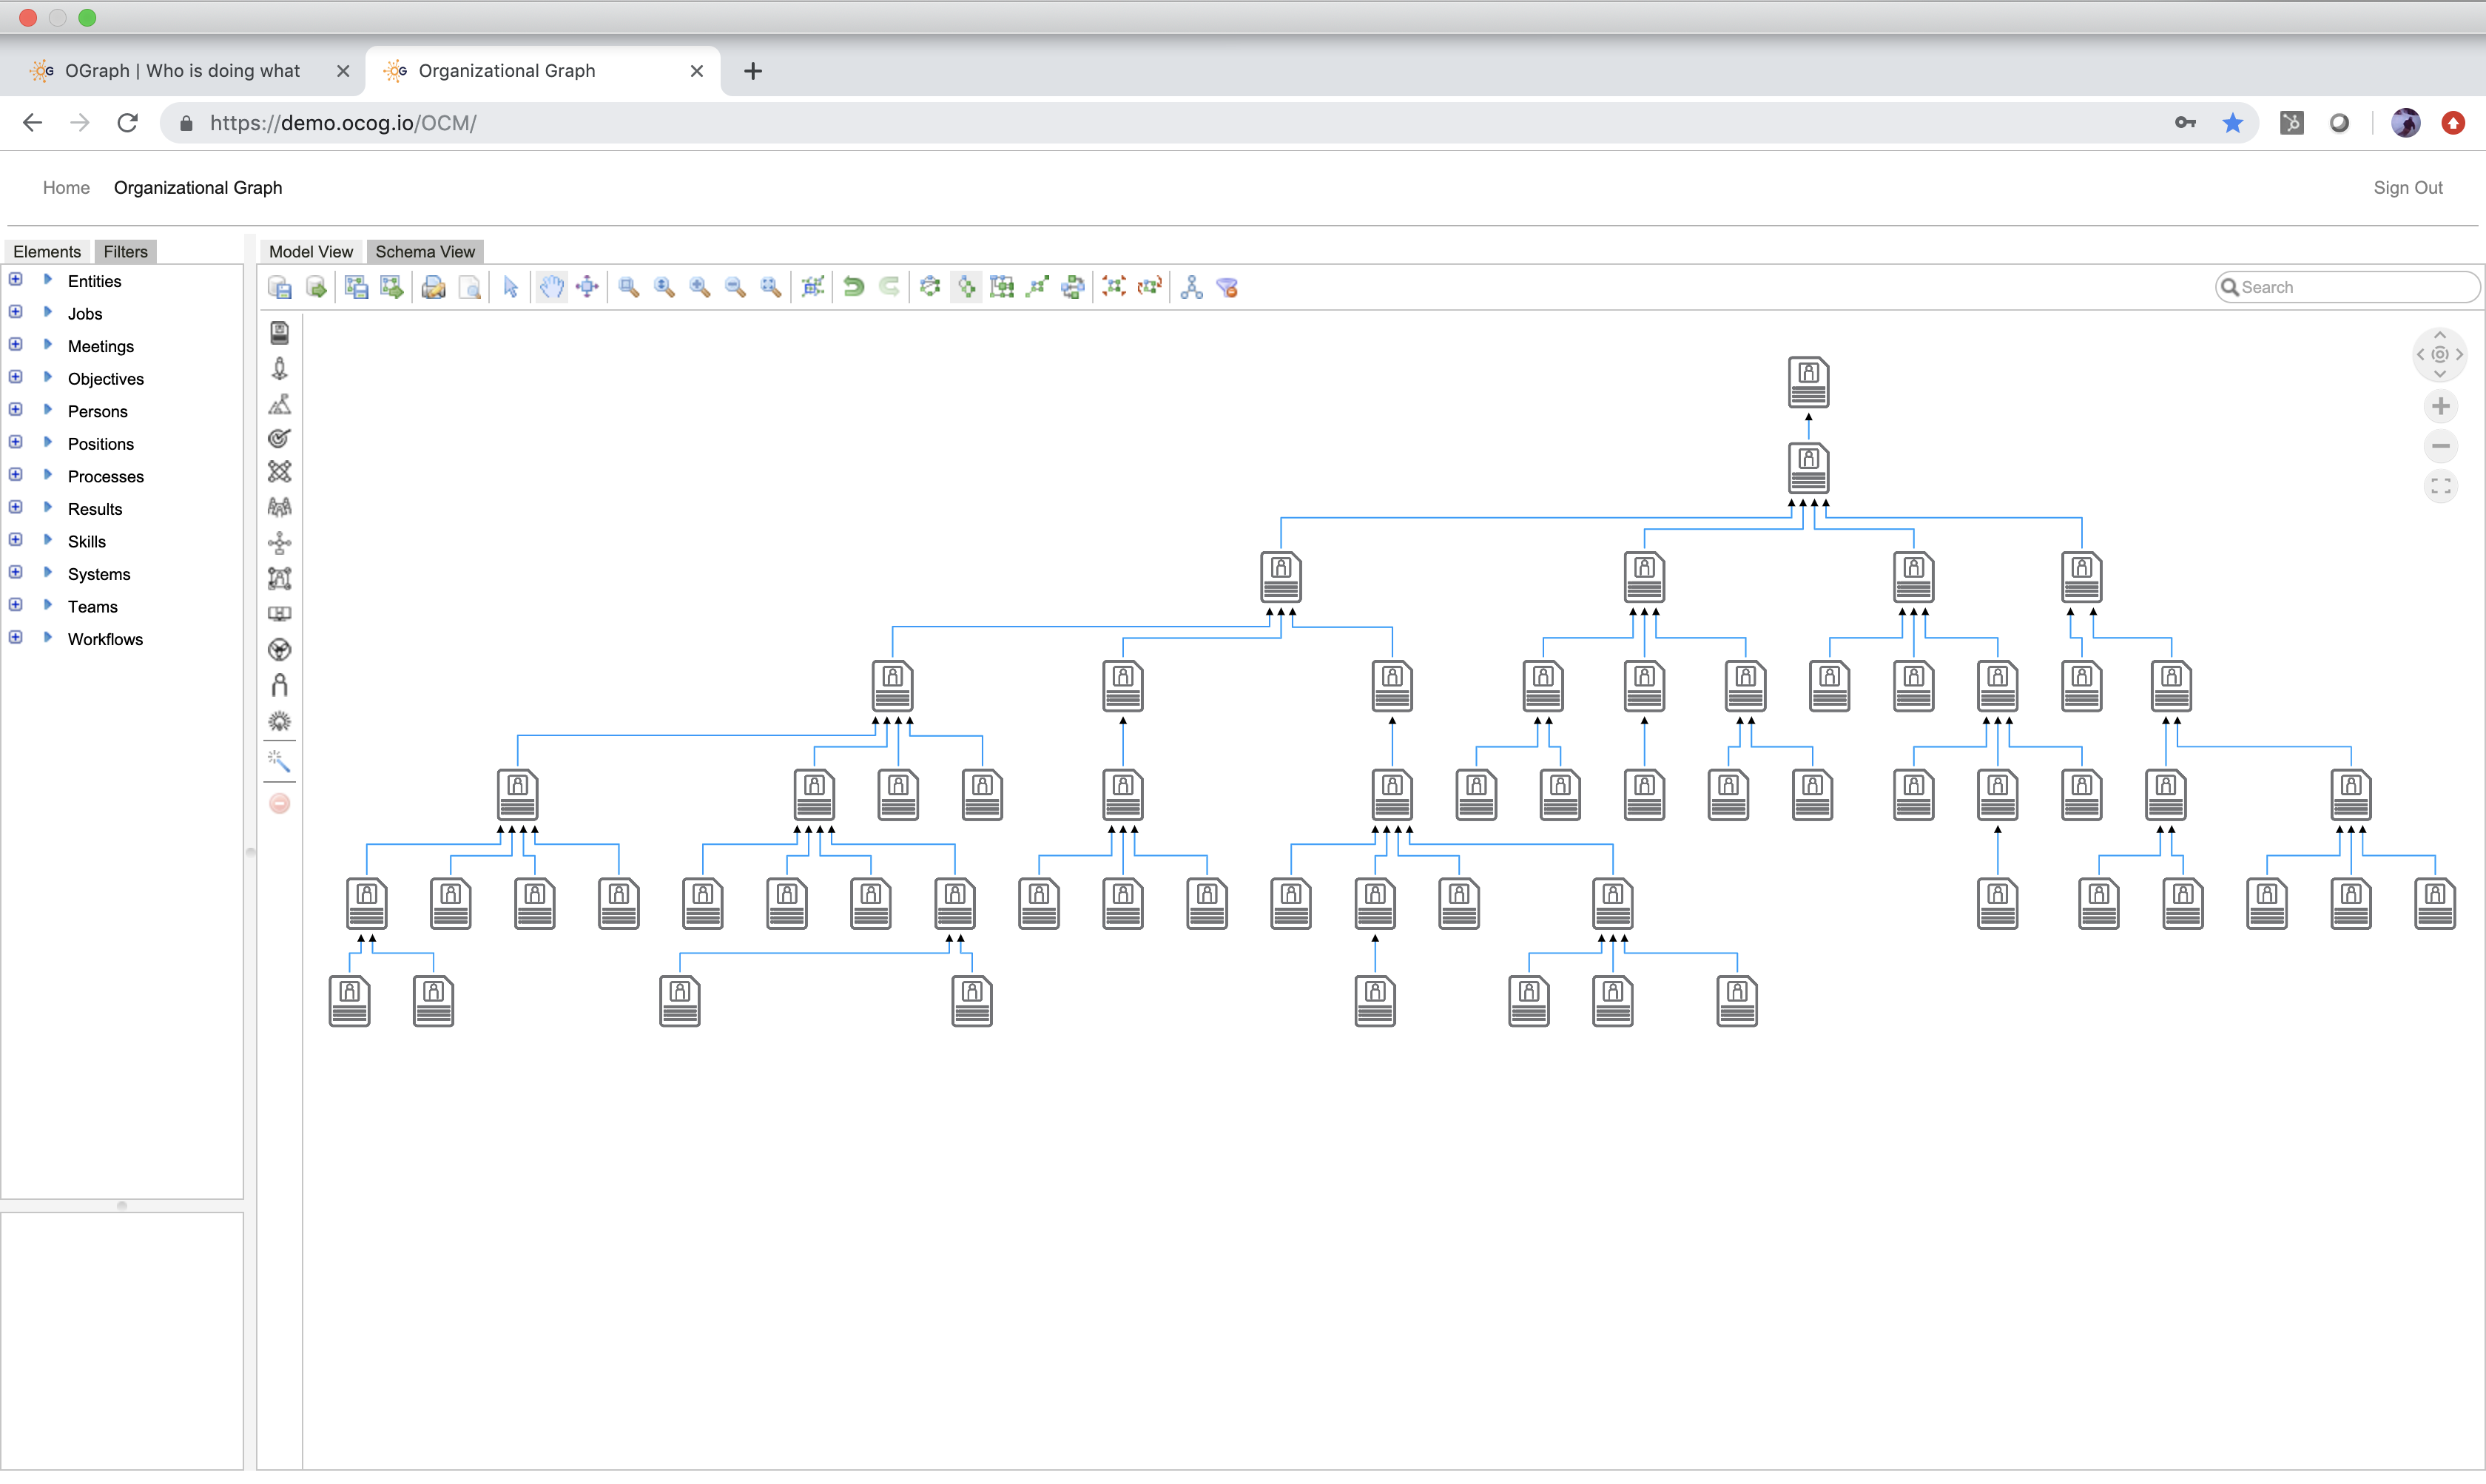 View a normal hierarchical org chart